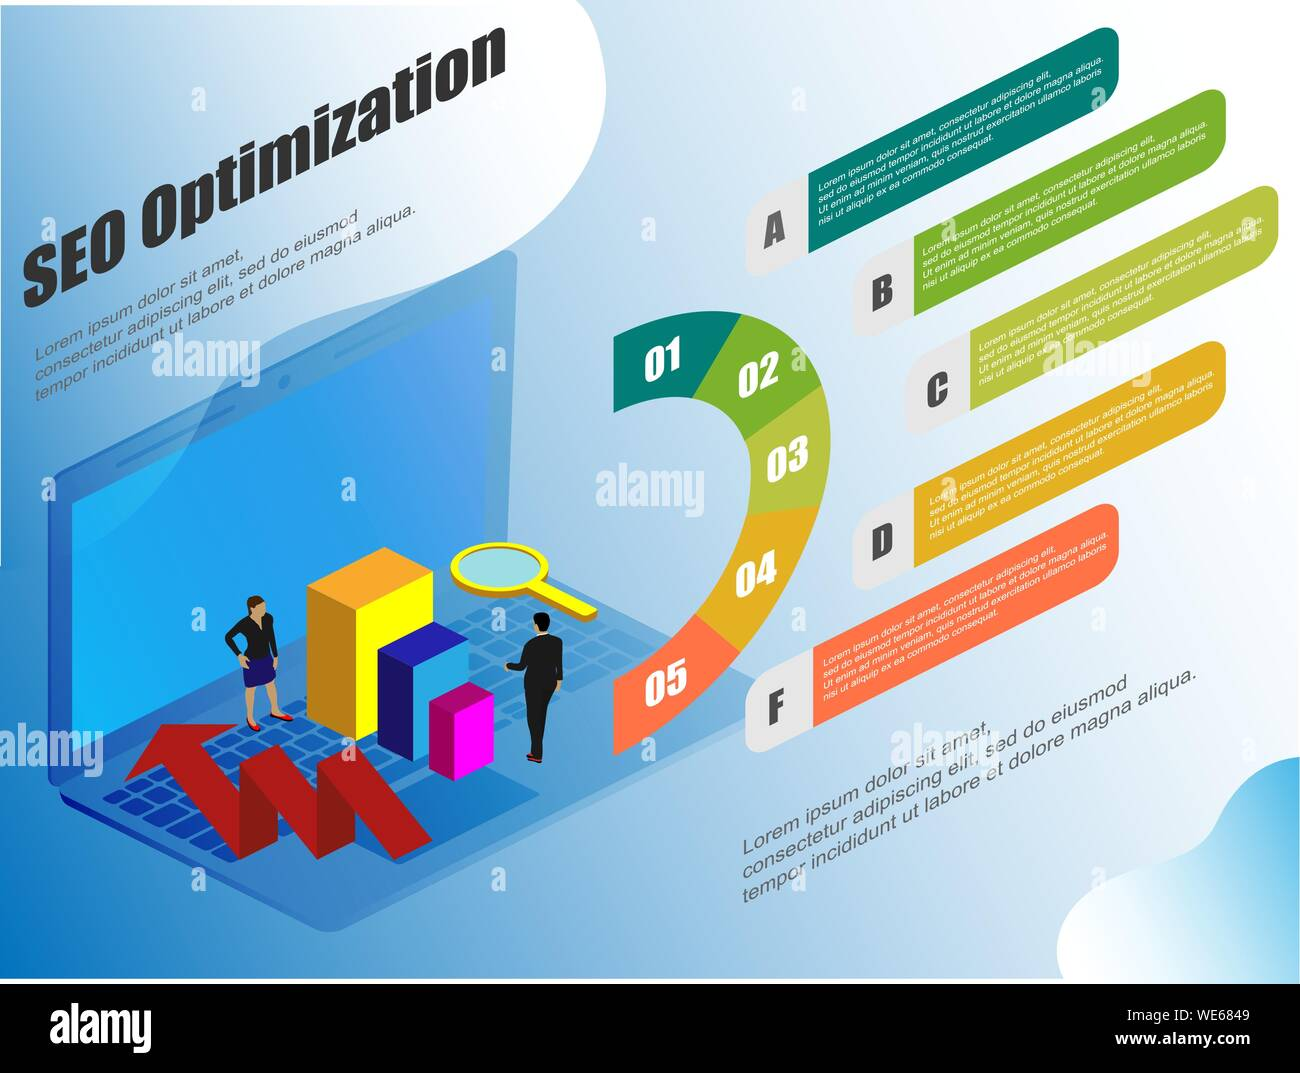 Isometric Great Design For Any Purposes Conceptual Web Seo Illustration Vector Seo Infographic Management Business Illustration For Web Stock Vector Image Art Alamy